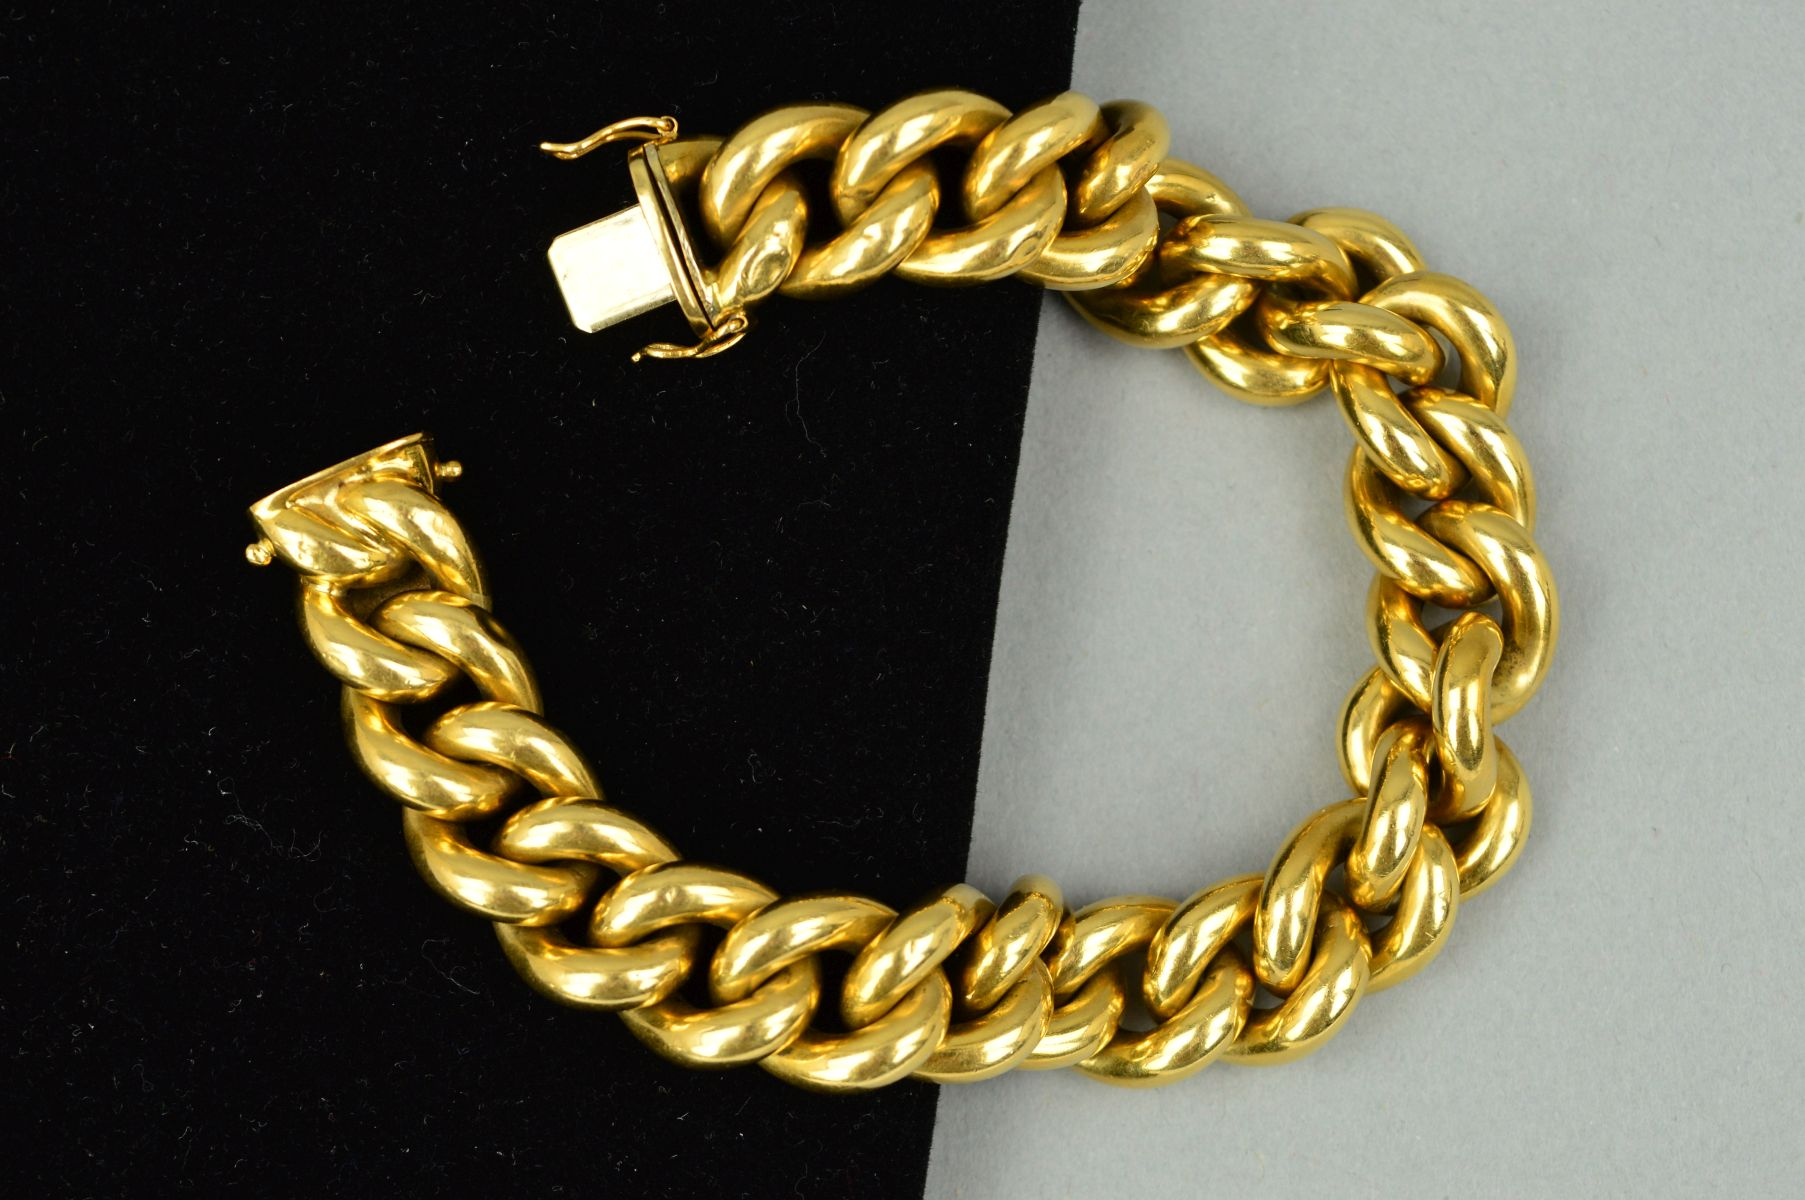 Lot 35 - A MODERN WIDE LINK HOLLOW CURB LINK BRACELET, plain polished links measuring 220mm in length x 13.